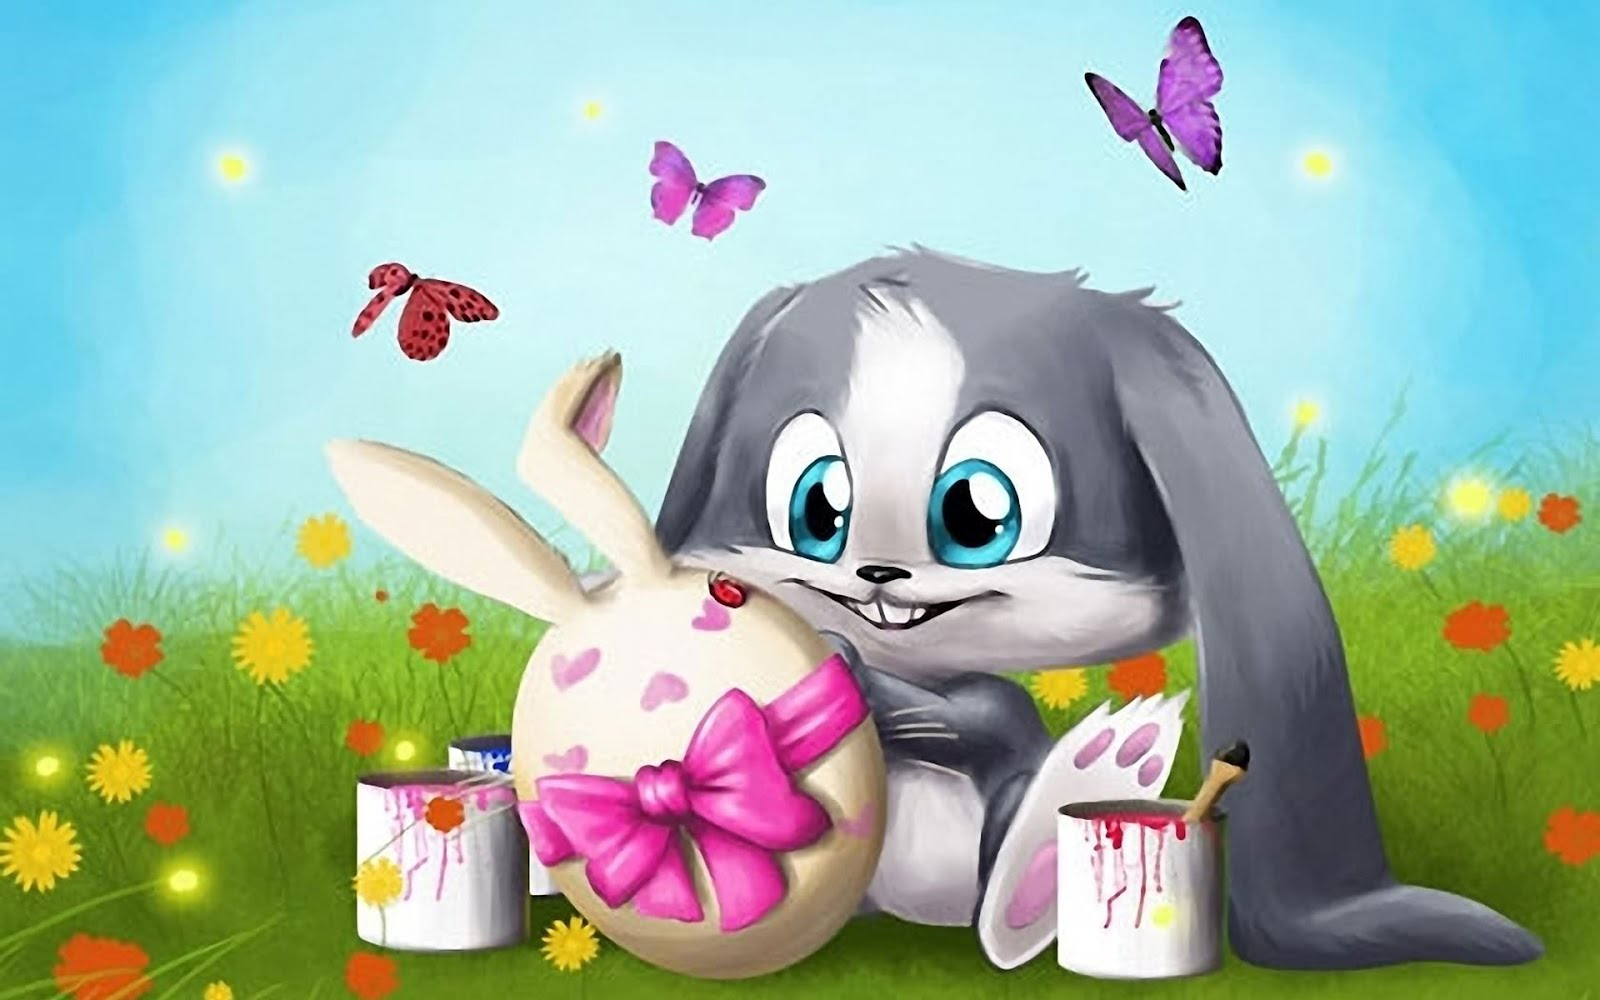 Free Download Easter Backgrounds For Windows 7 Submited Images